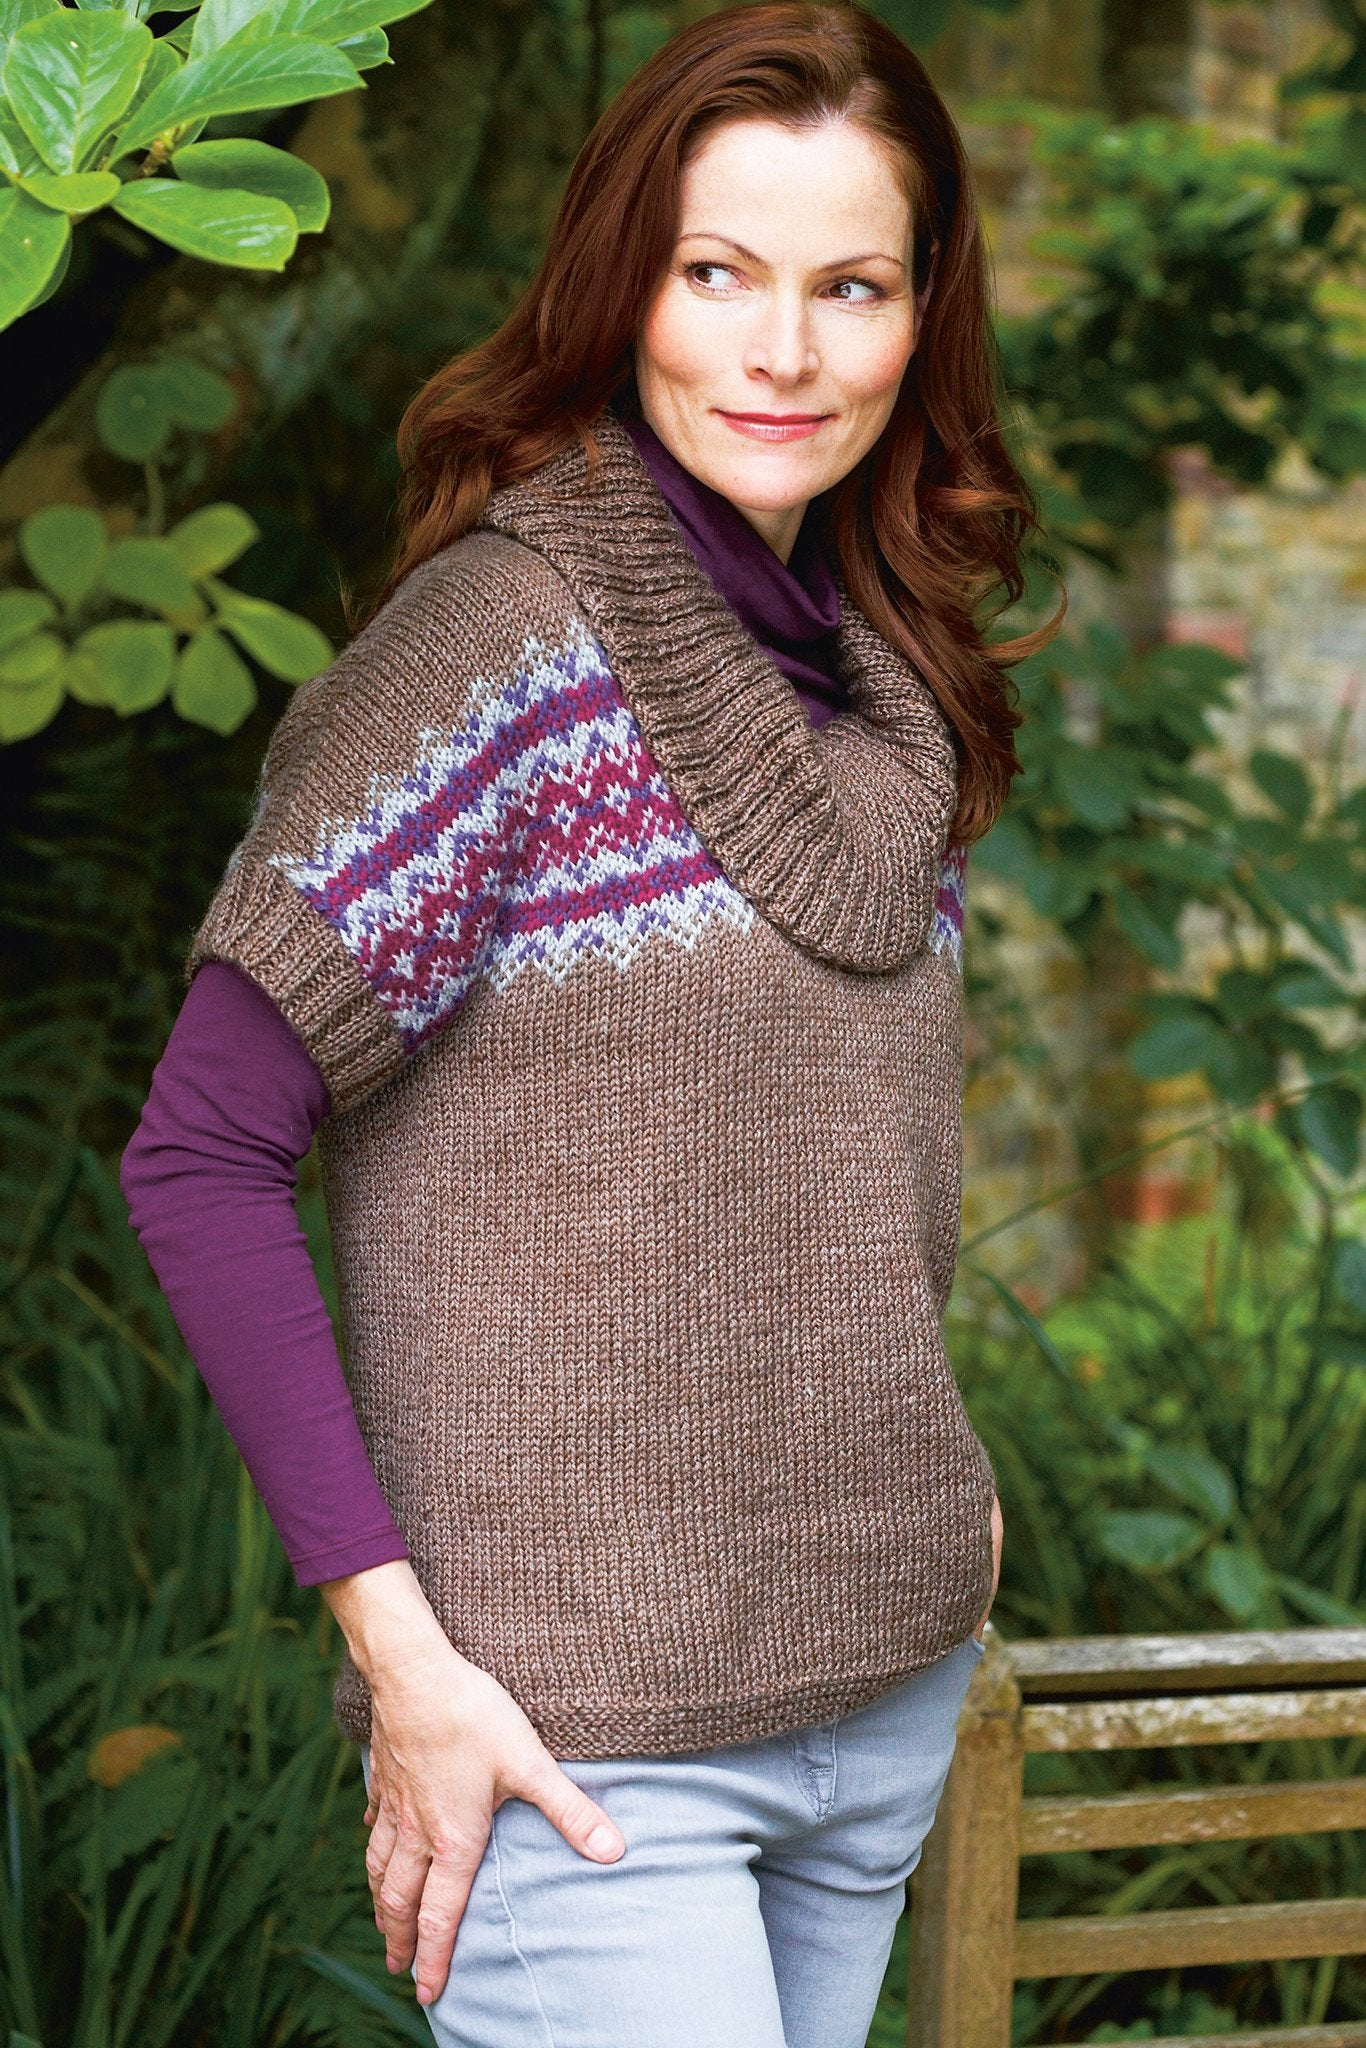 Womens Fair Isle Cowl Neck Top Knitting Pattern – The Knitting Network